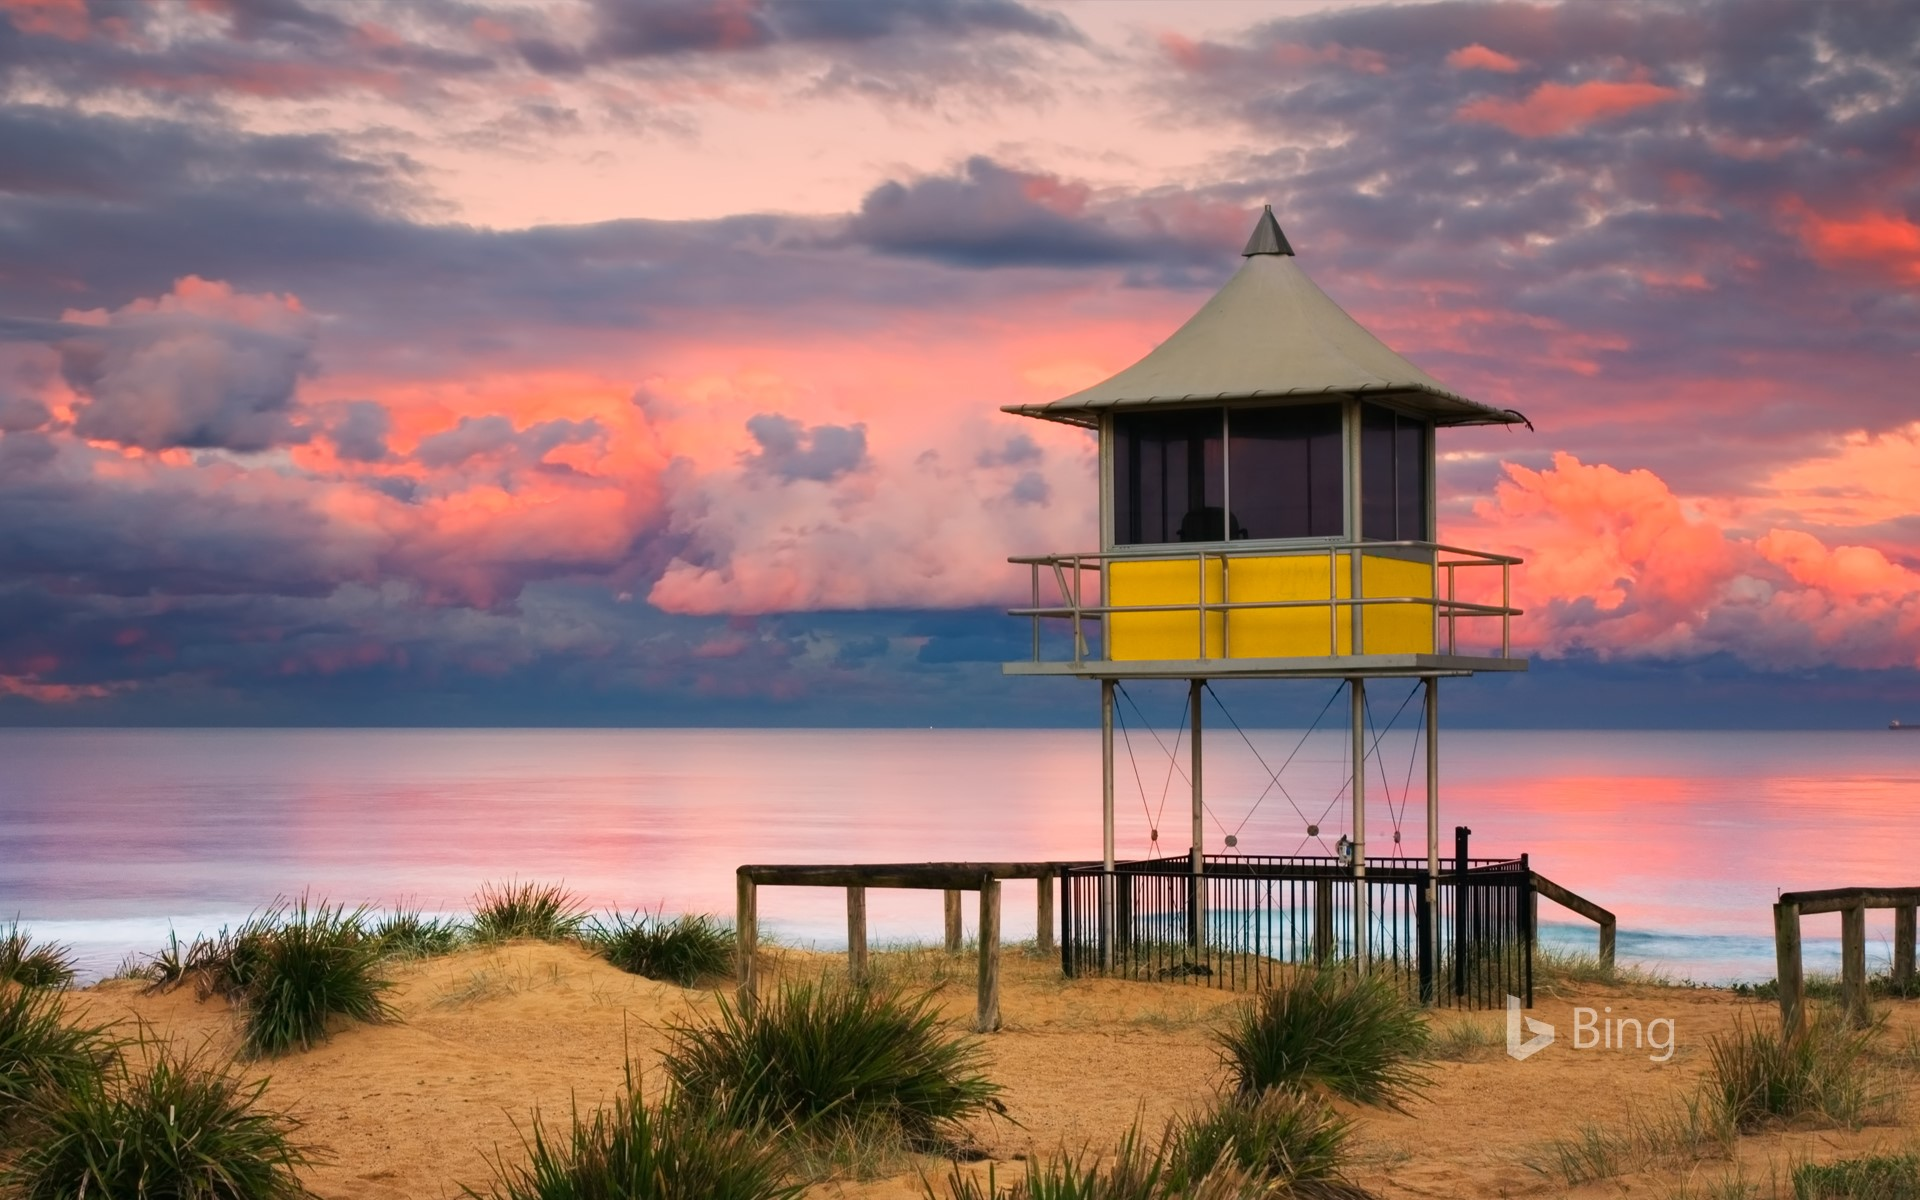 Lifeguard shack at sunset on The Entrance beach, Central Coast, New South Wales, Australia